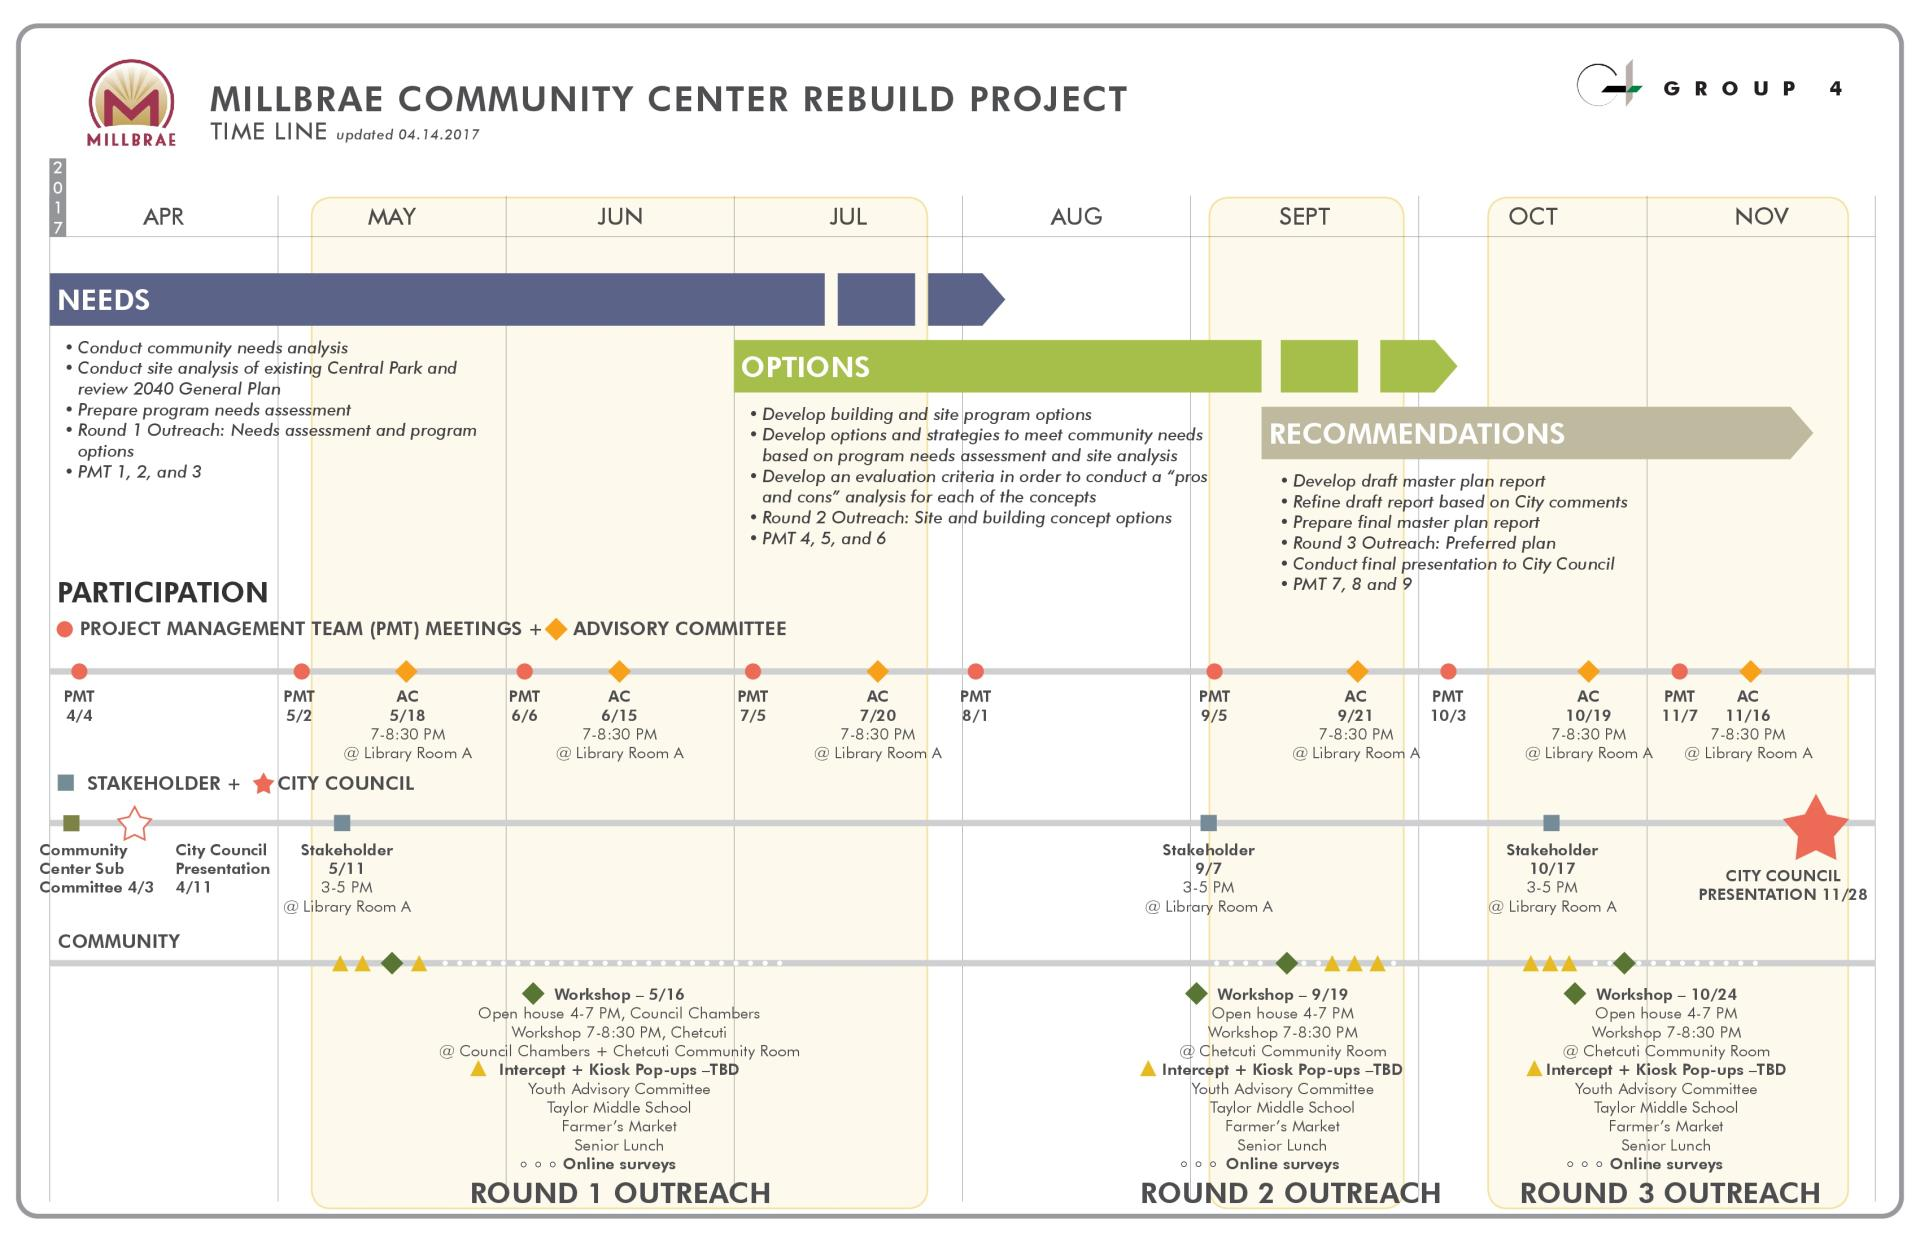 Community Center Rebuild Timeline - Group 4